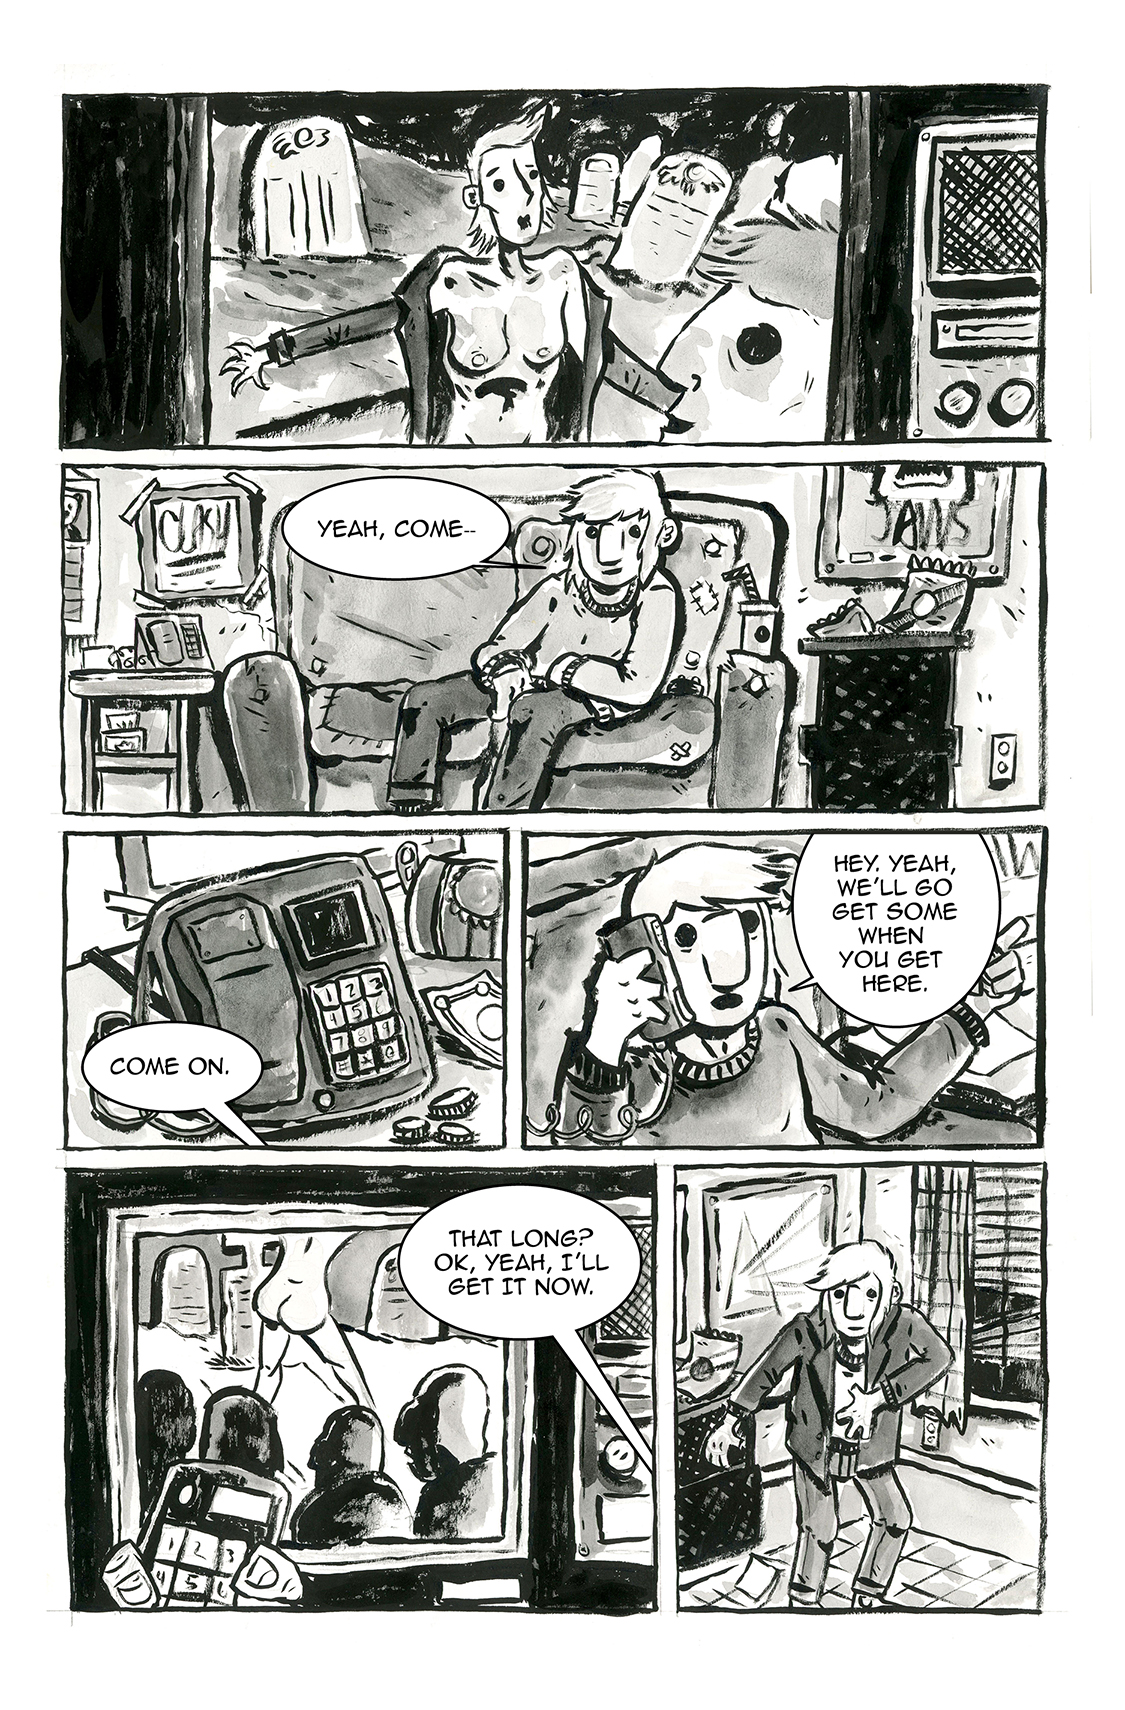 Hey, Come Here, pg 1, by Sam Costello and Claire Connelly